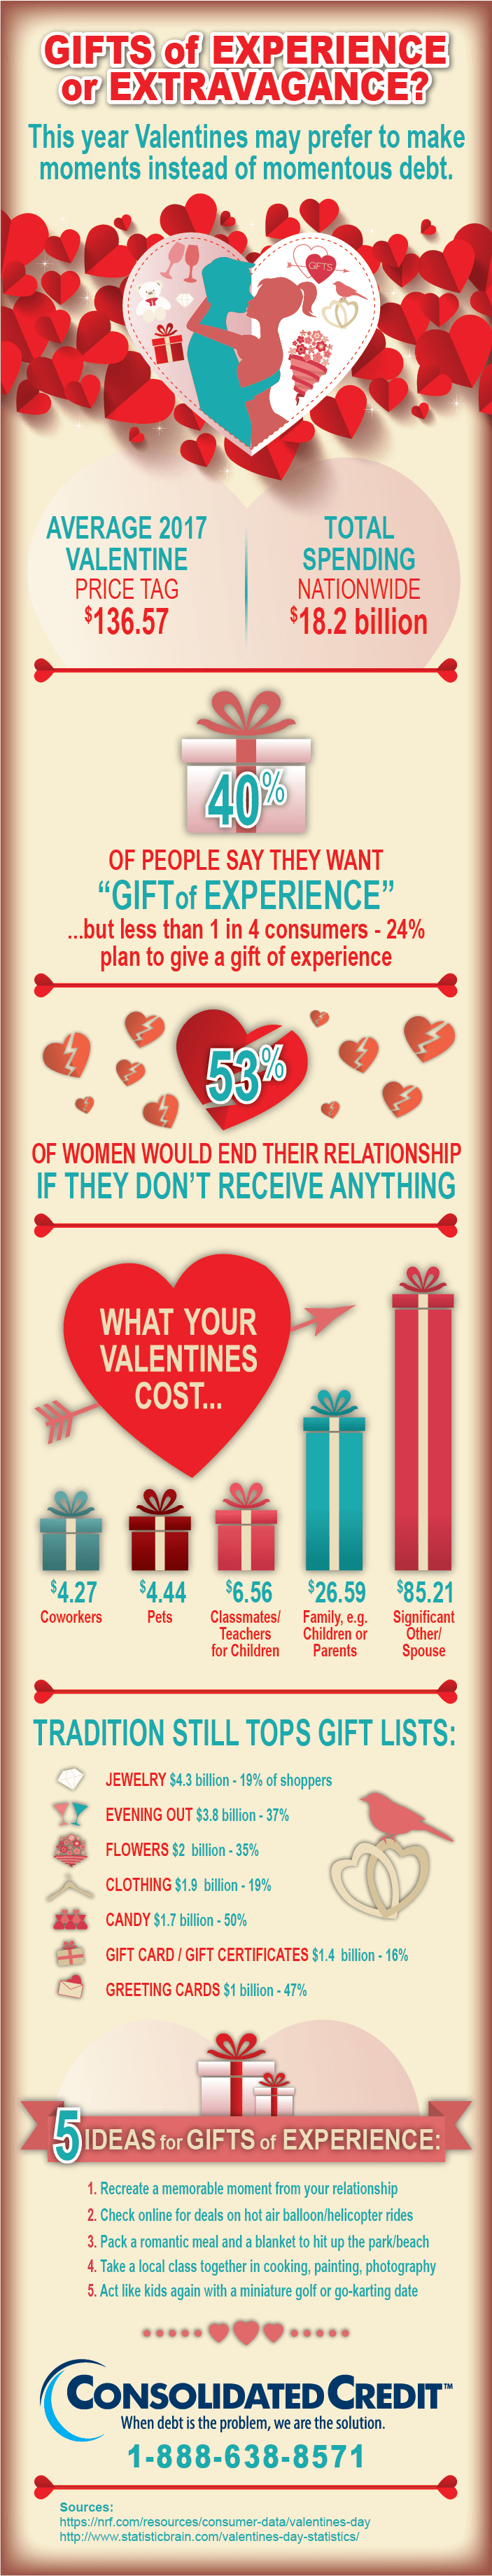 Are going into debt for Valentines gifts?